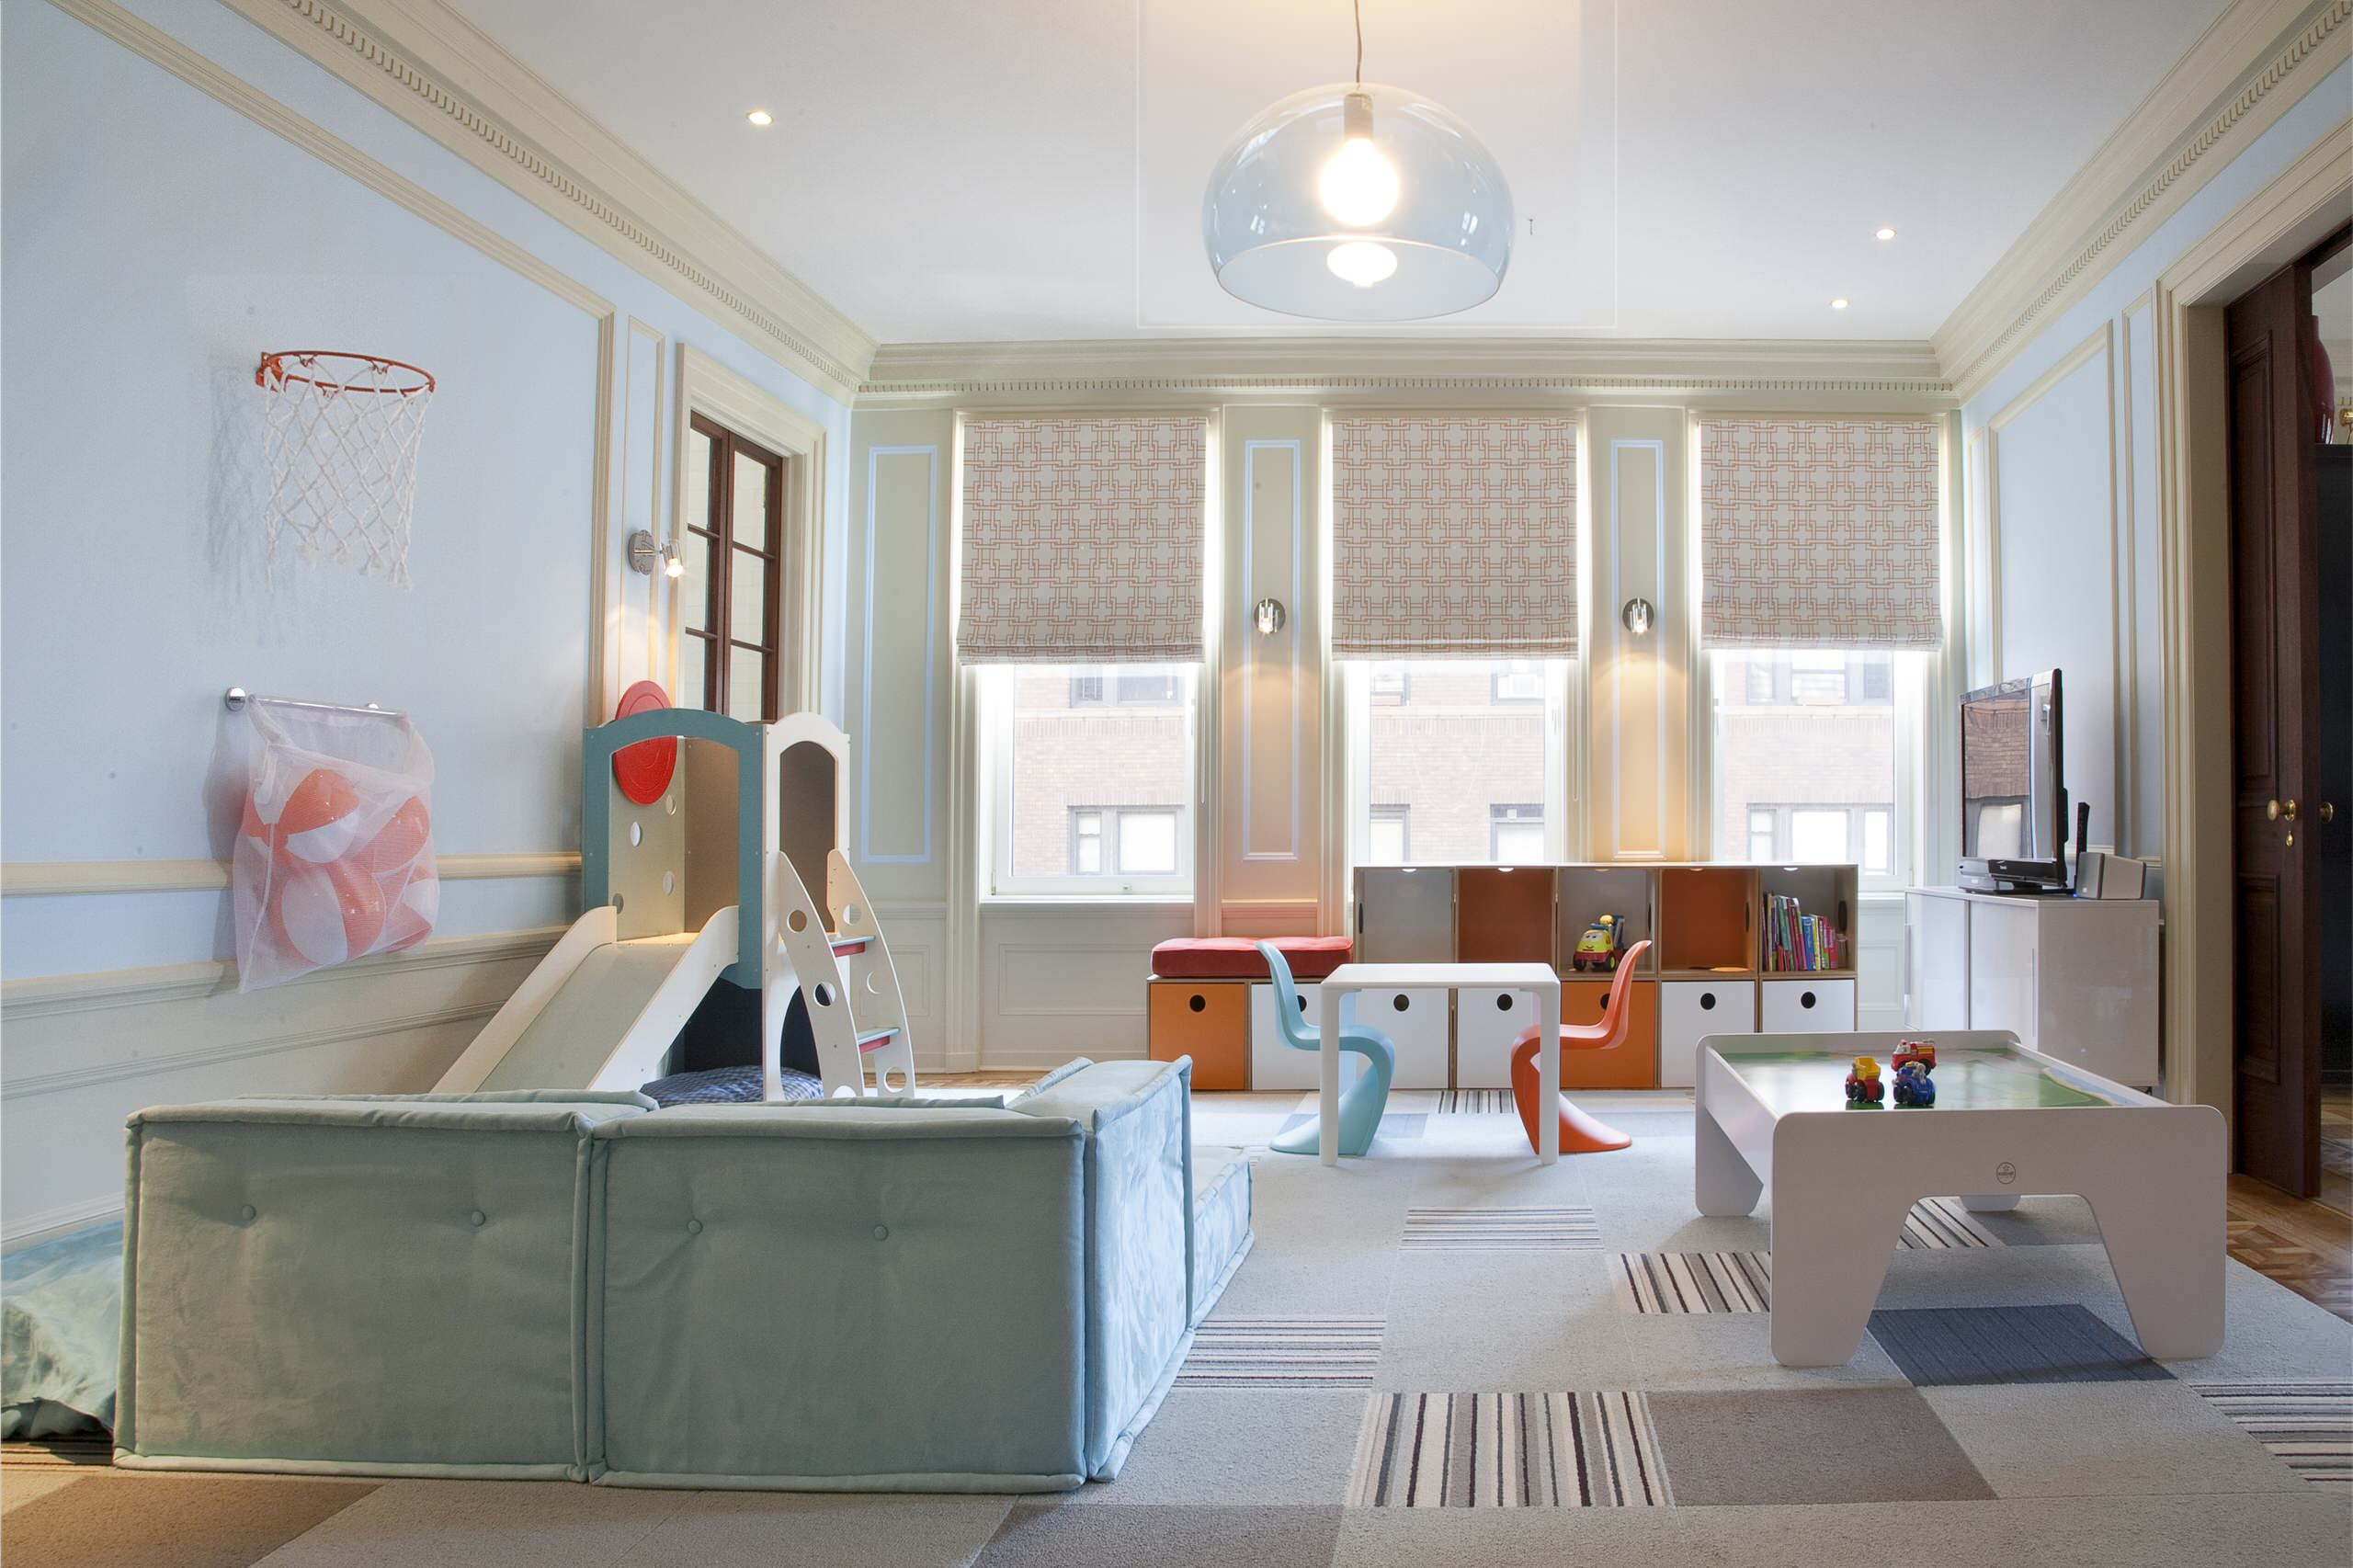 14 Imaginative Playroom Ideas That Will Keep Kids Coming Back For More Houzz Au